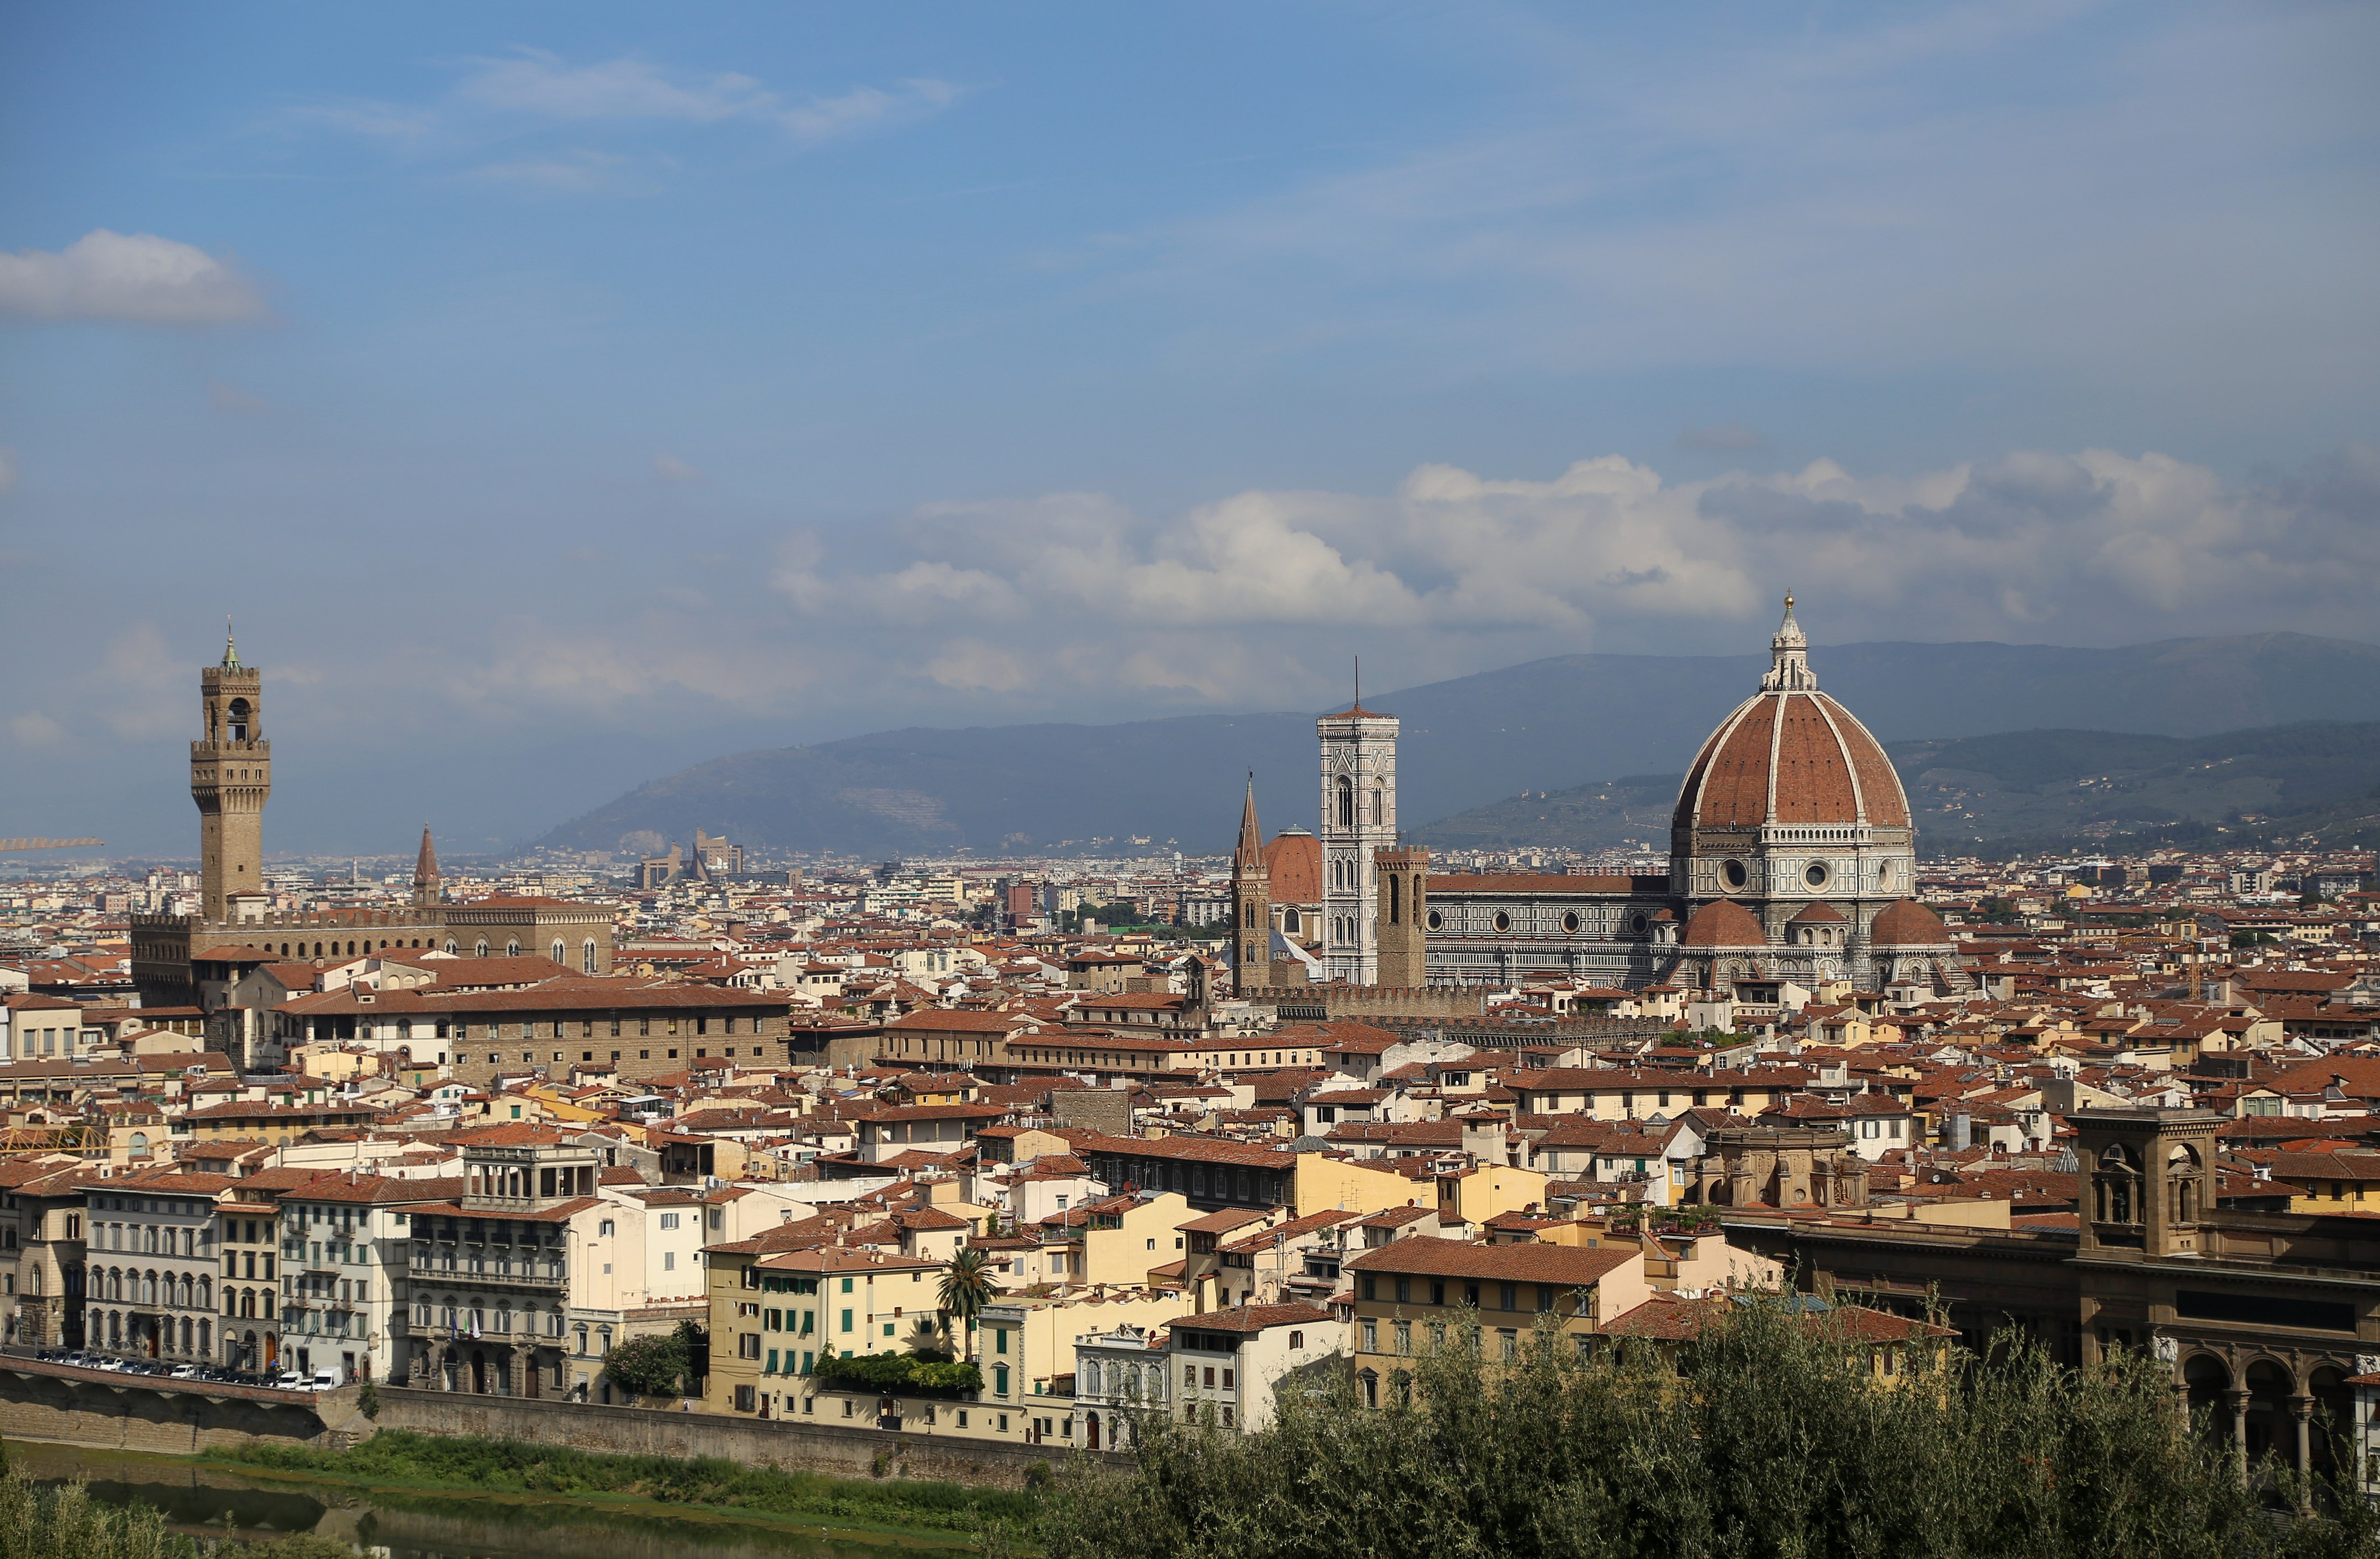 Piazzale Michelangelo, view over Florence's most iconic landmarks, Palazzo Vecchio and the Duomo